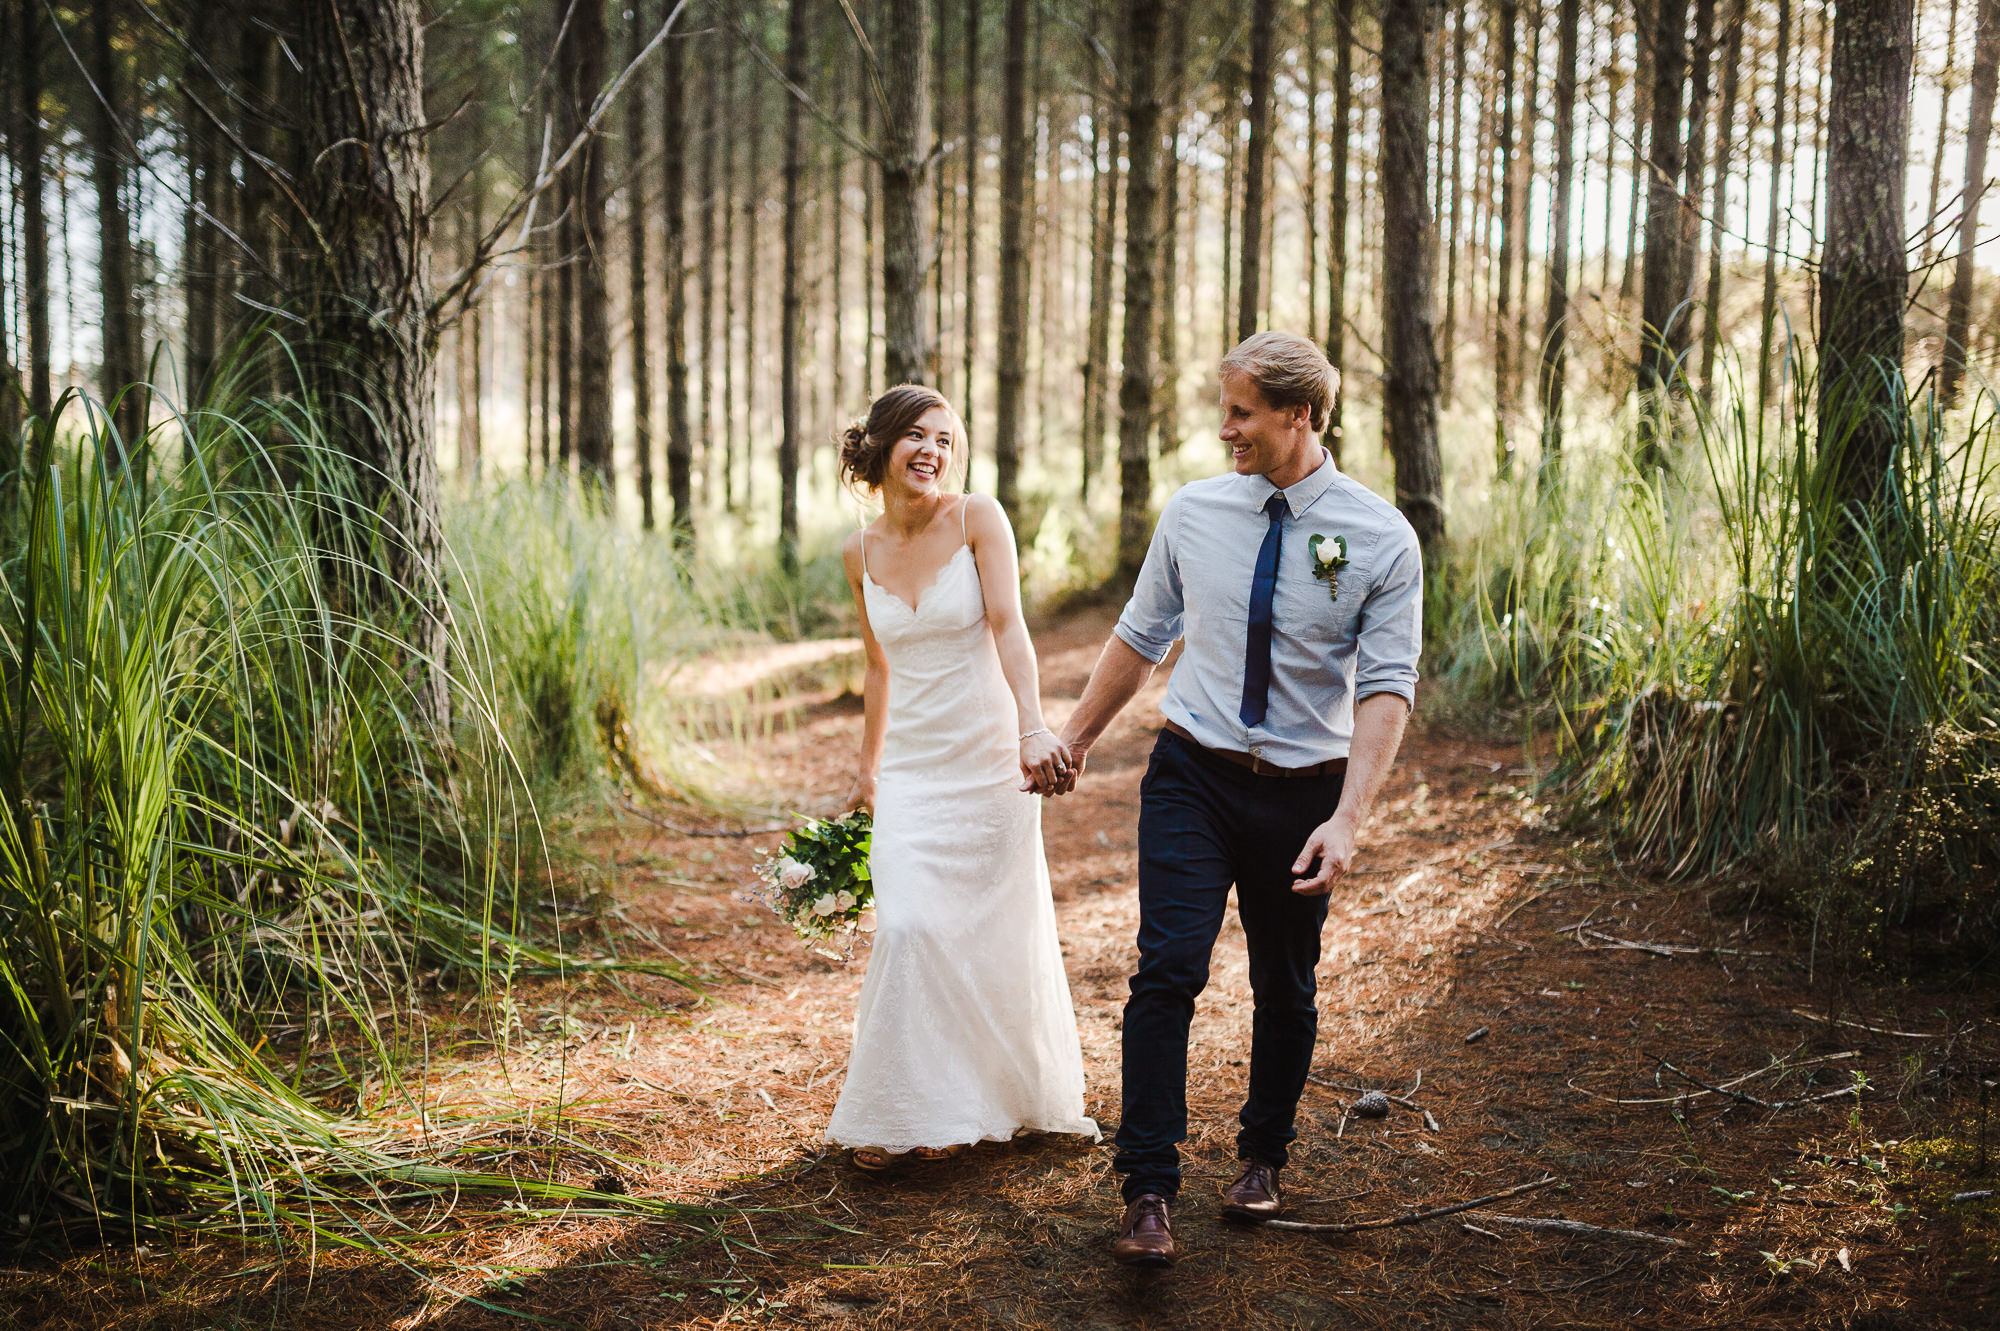 bride and groom walking through forest auckland wedding.jpg